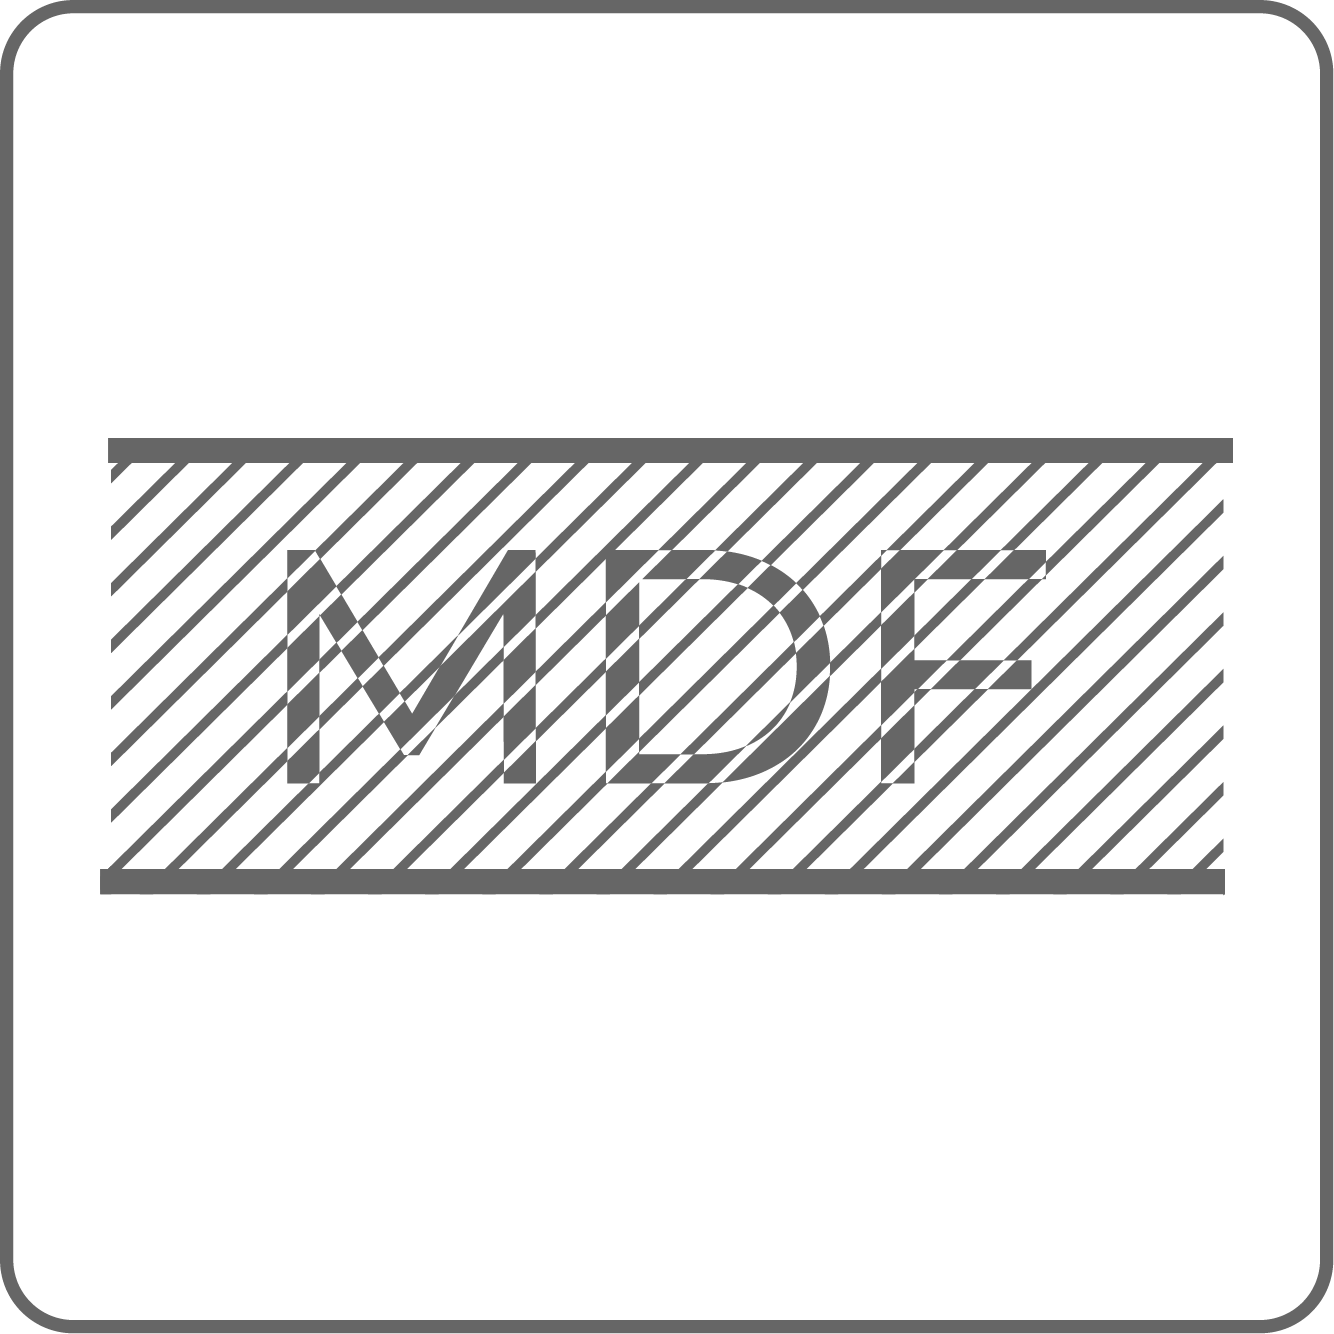 mdf-01.png